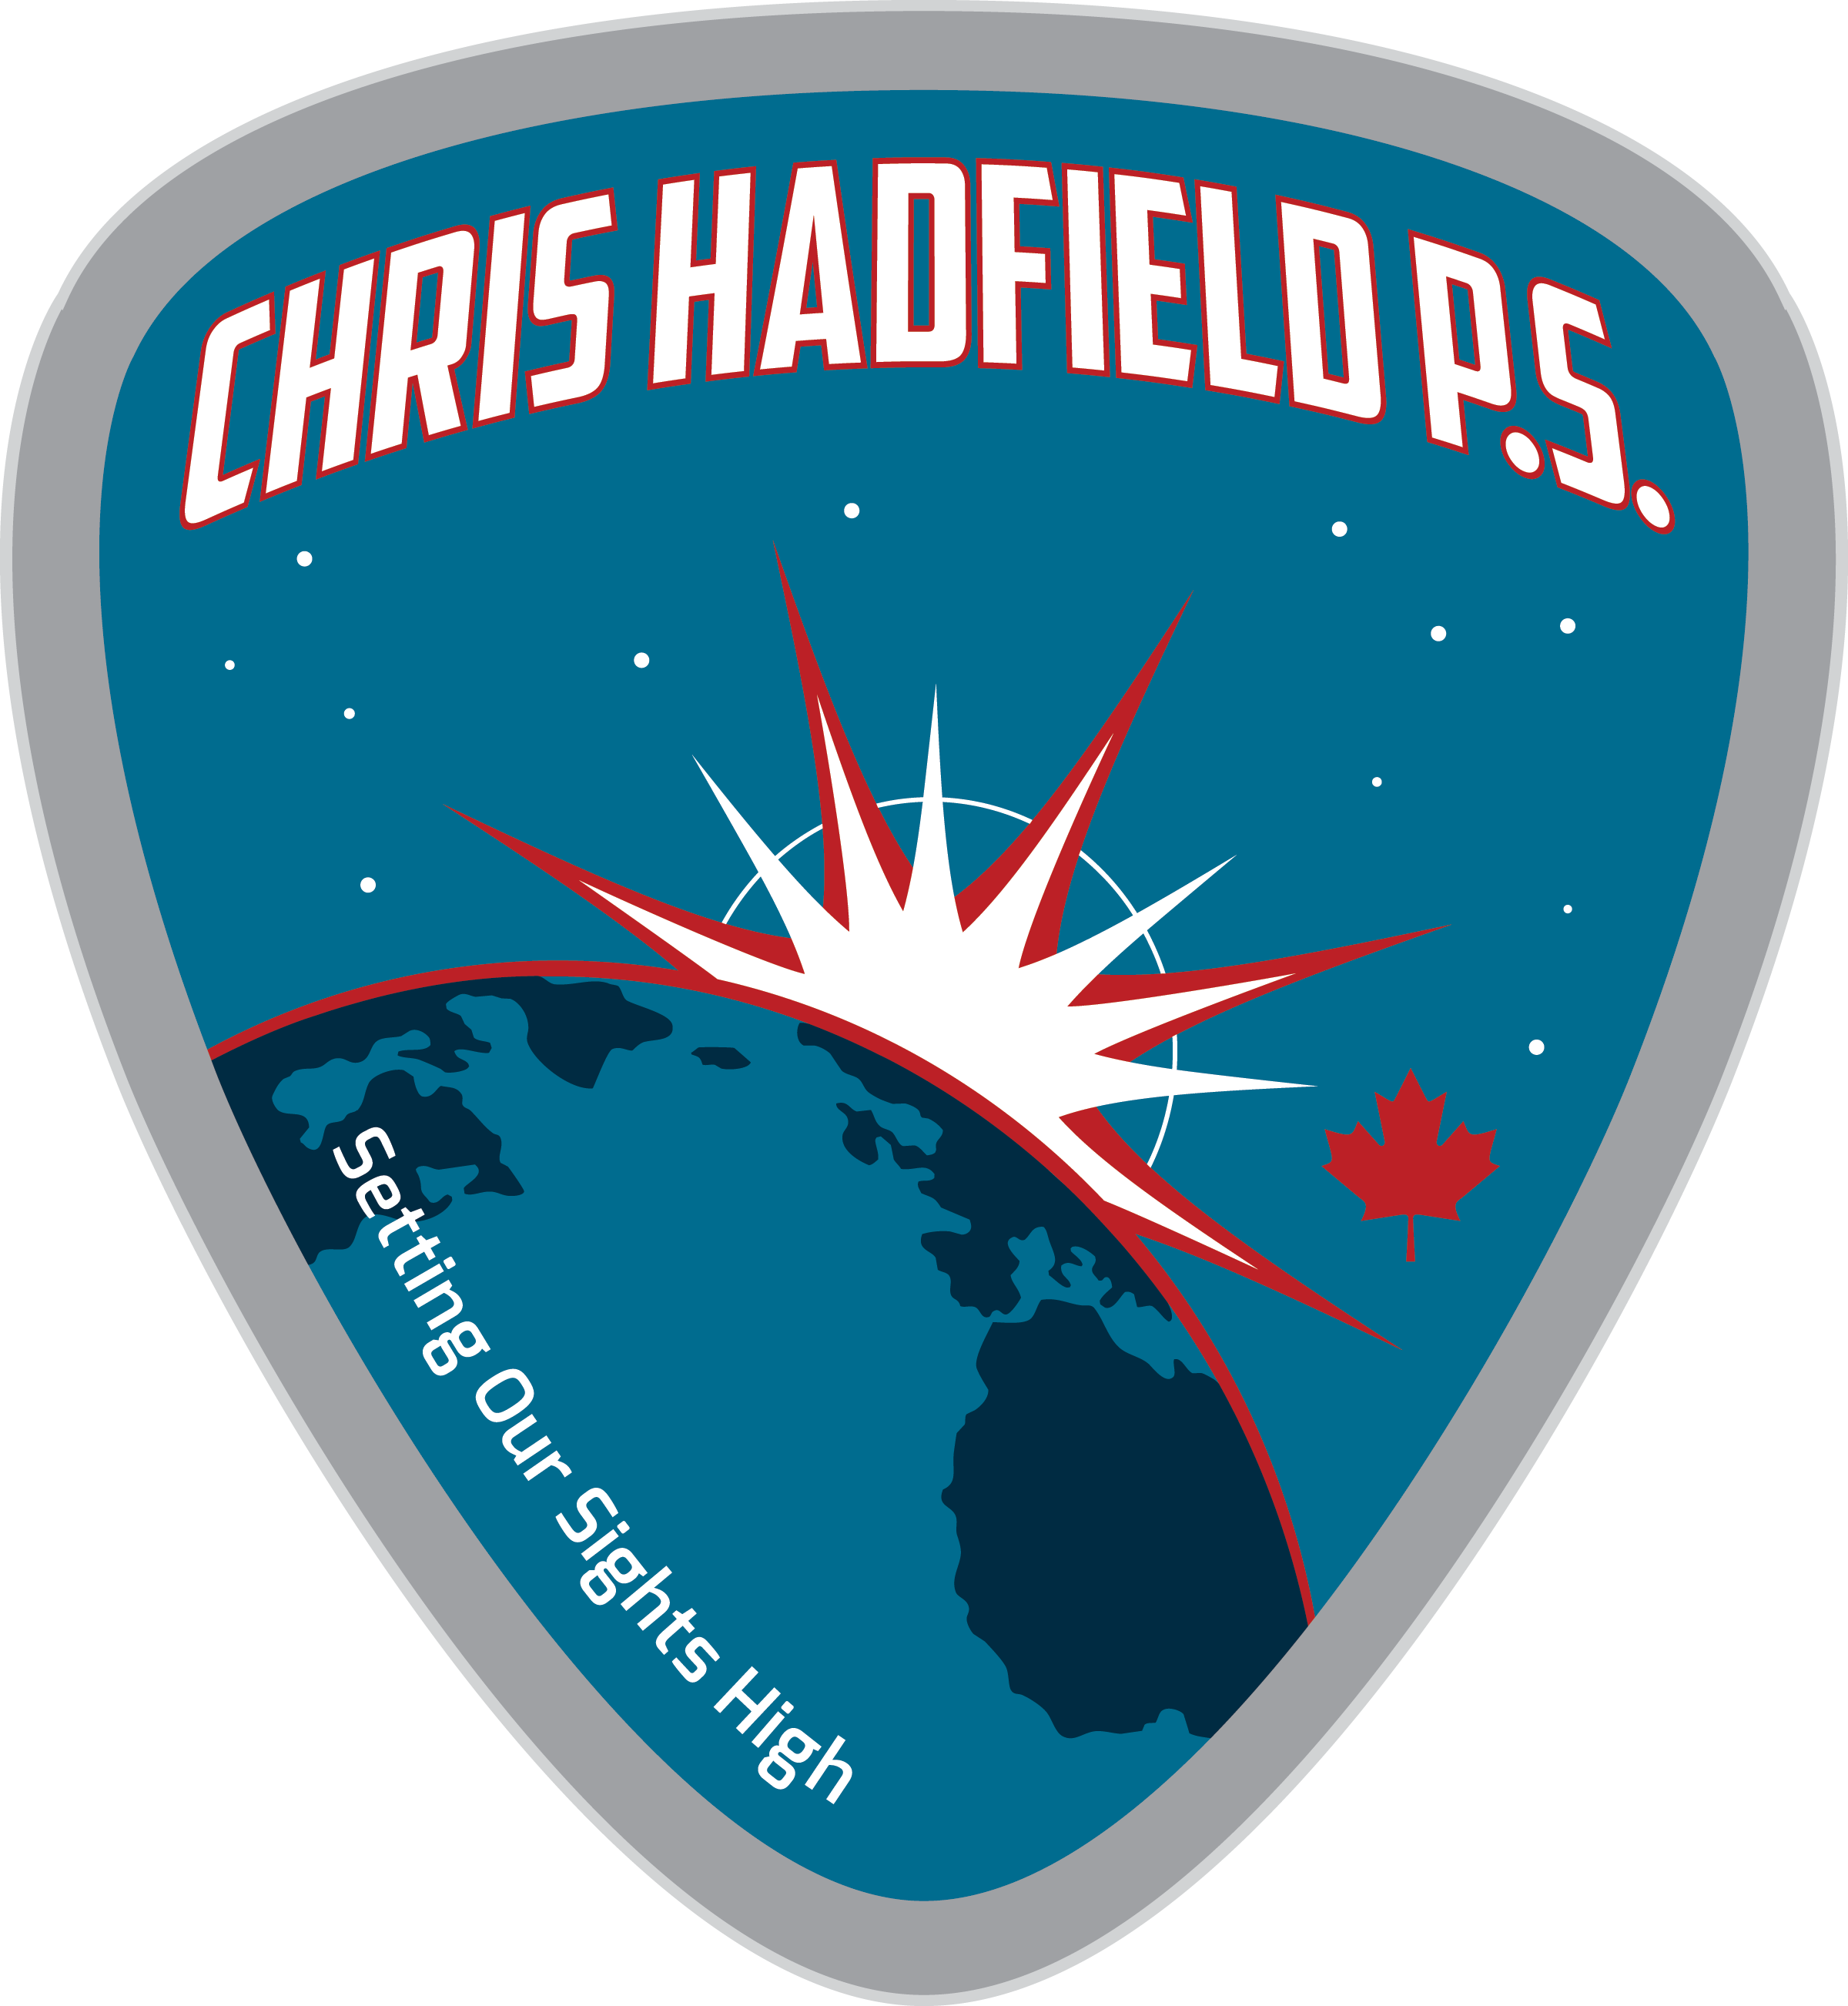 Chris Hadfield Public School logo